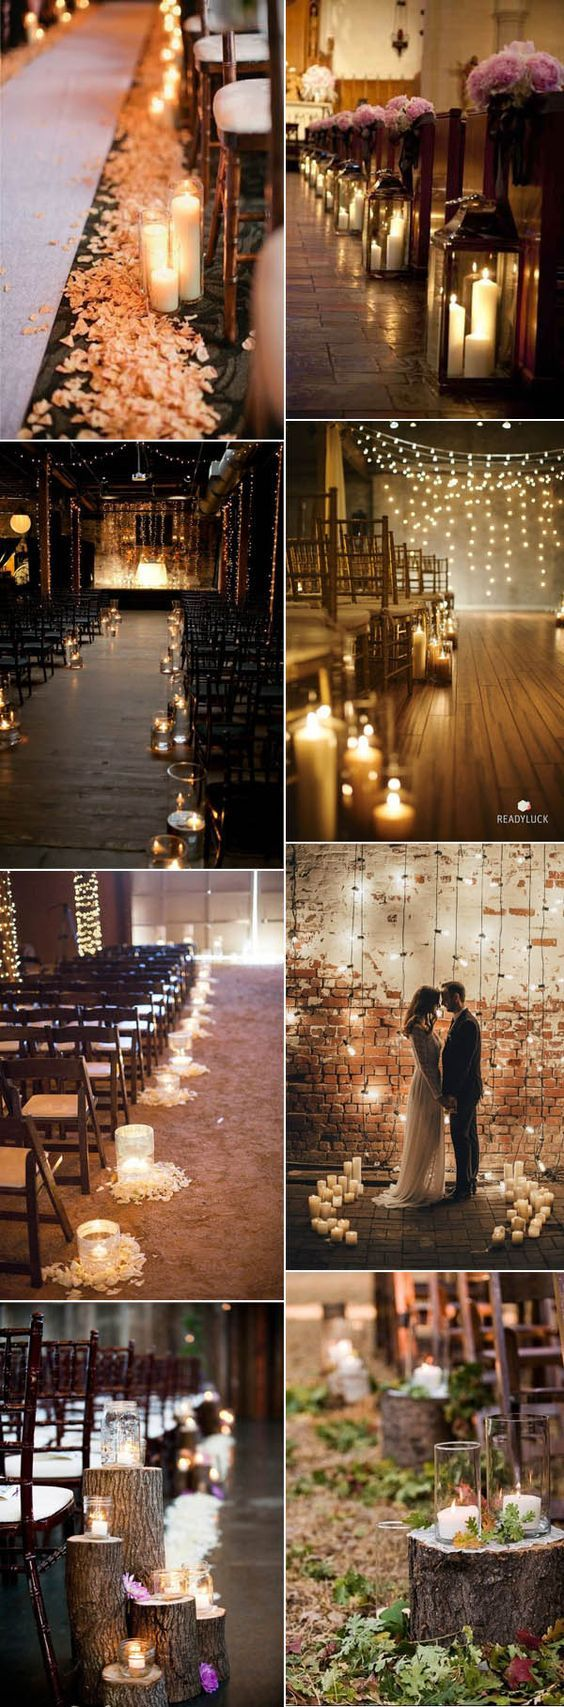 Finding a wedding venue is one of the biggest wedding decisions you'll make in the whole planning process – not to mention one of the biggest chunks from your wallet. It can be overwhelming and stressful. After all, the venue you chose sets the mood and atmosphere for your wedding. However, choosing your venue doesn't …